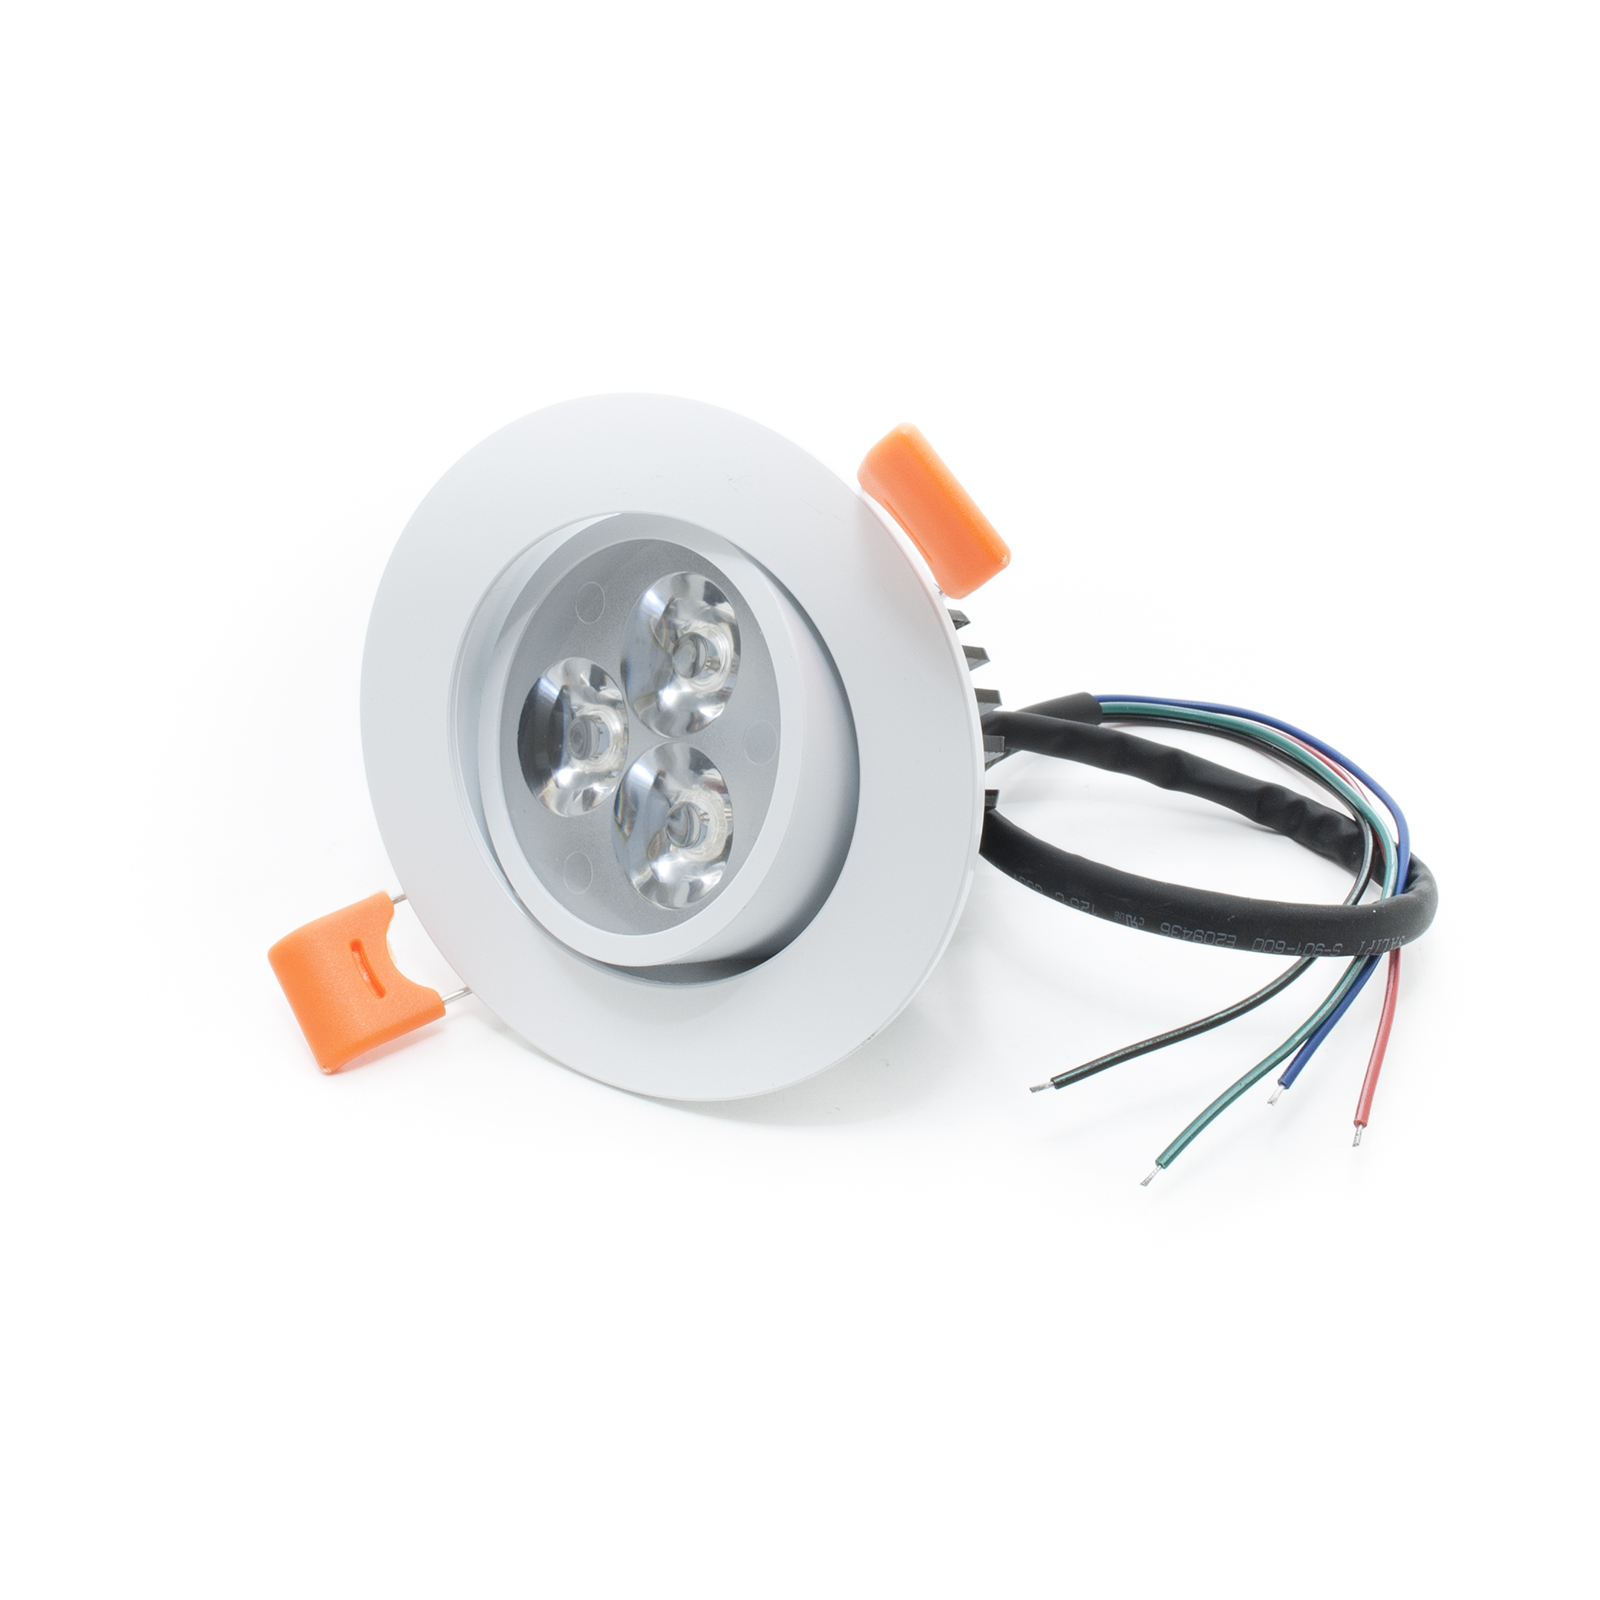 OscommerceProjecteur À 12v Chromothérapie Led Encastrable 5w Rgb KTclJF1